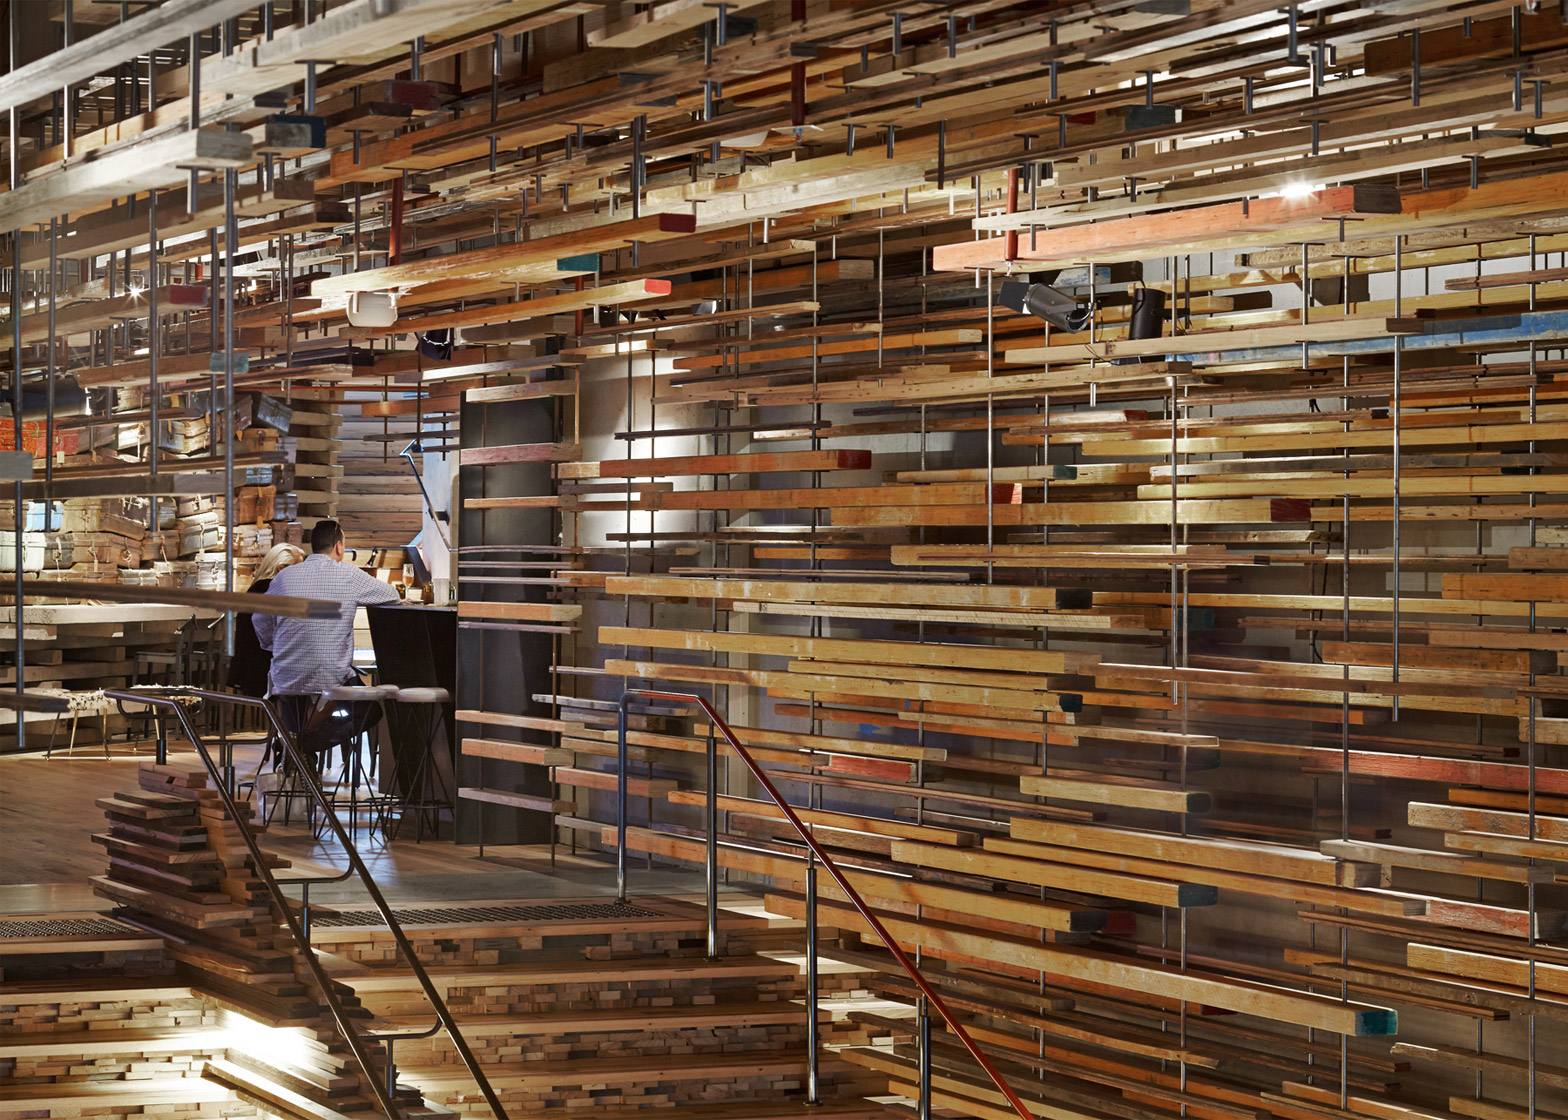 Festival interior design awards 2015 for Australian design studio